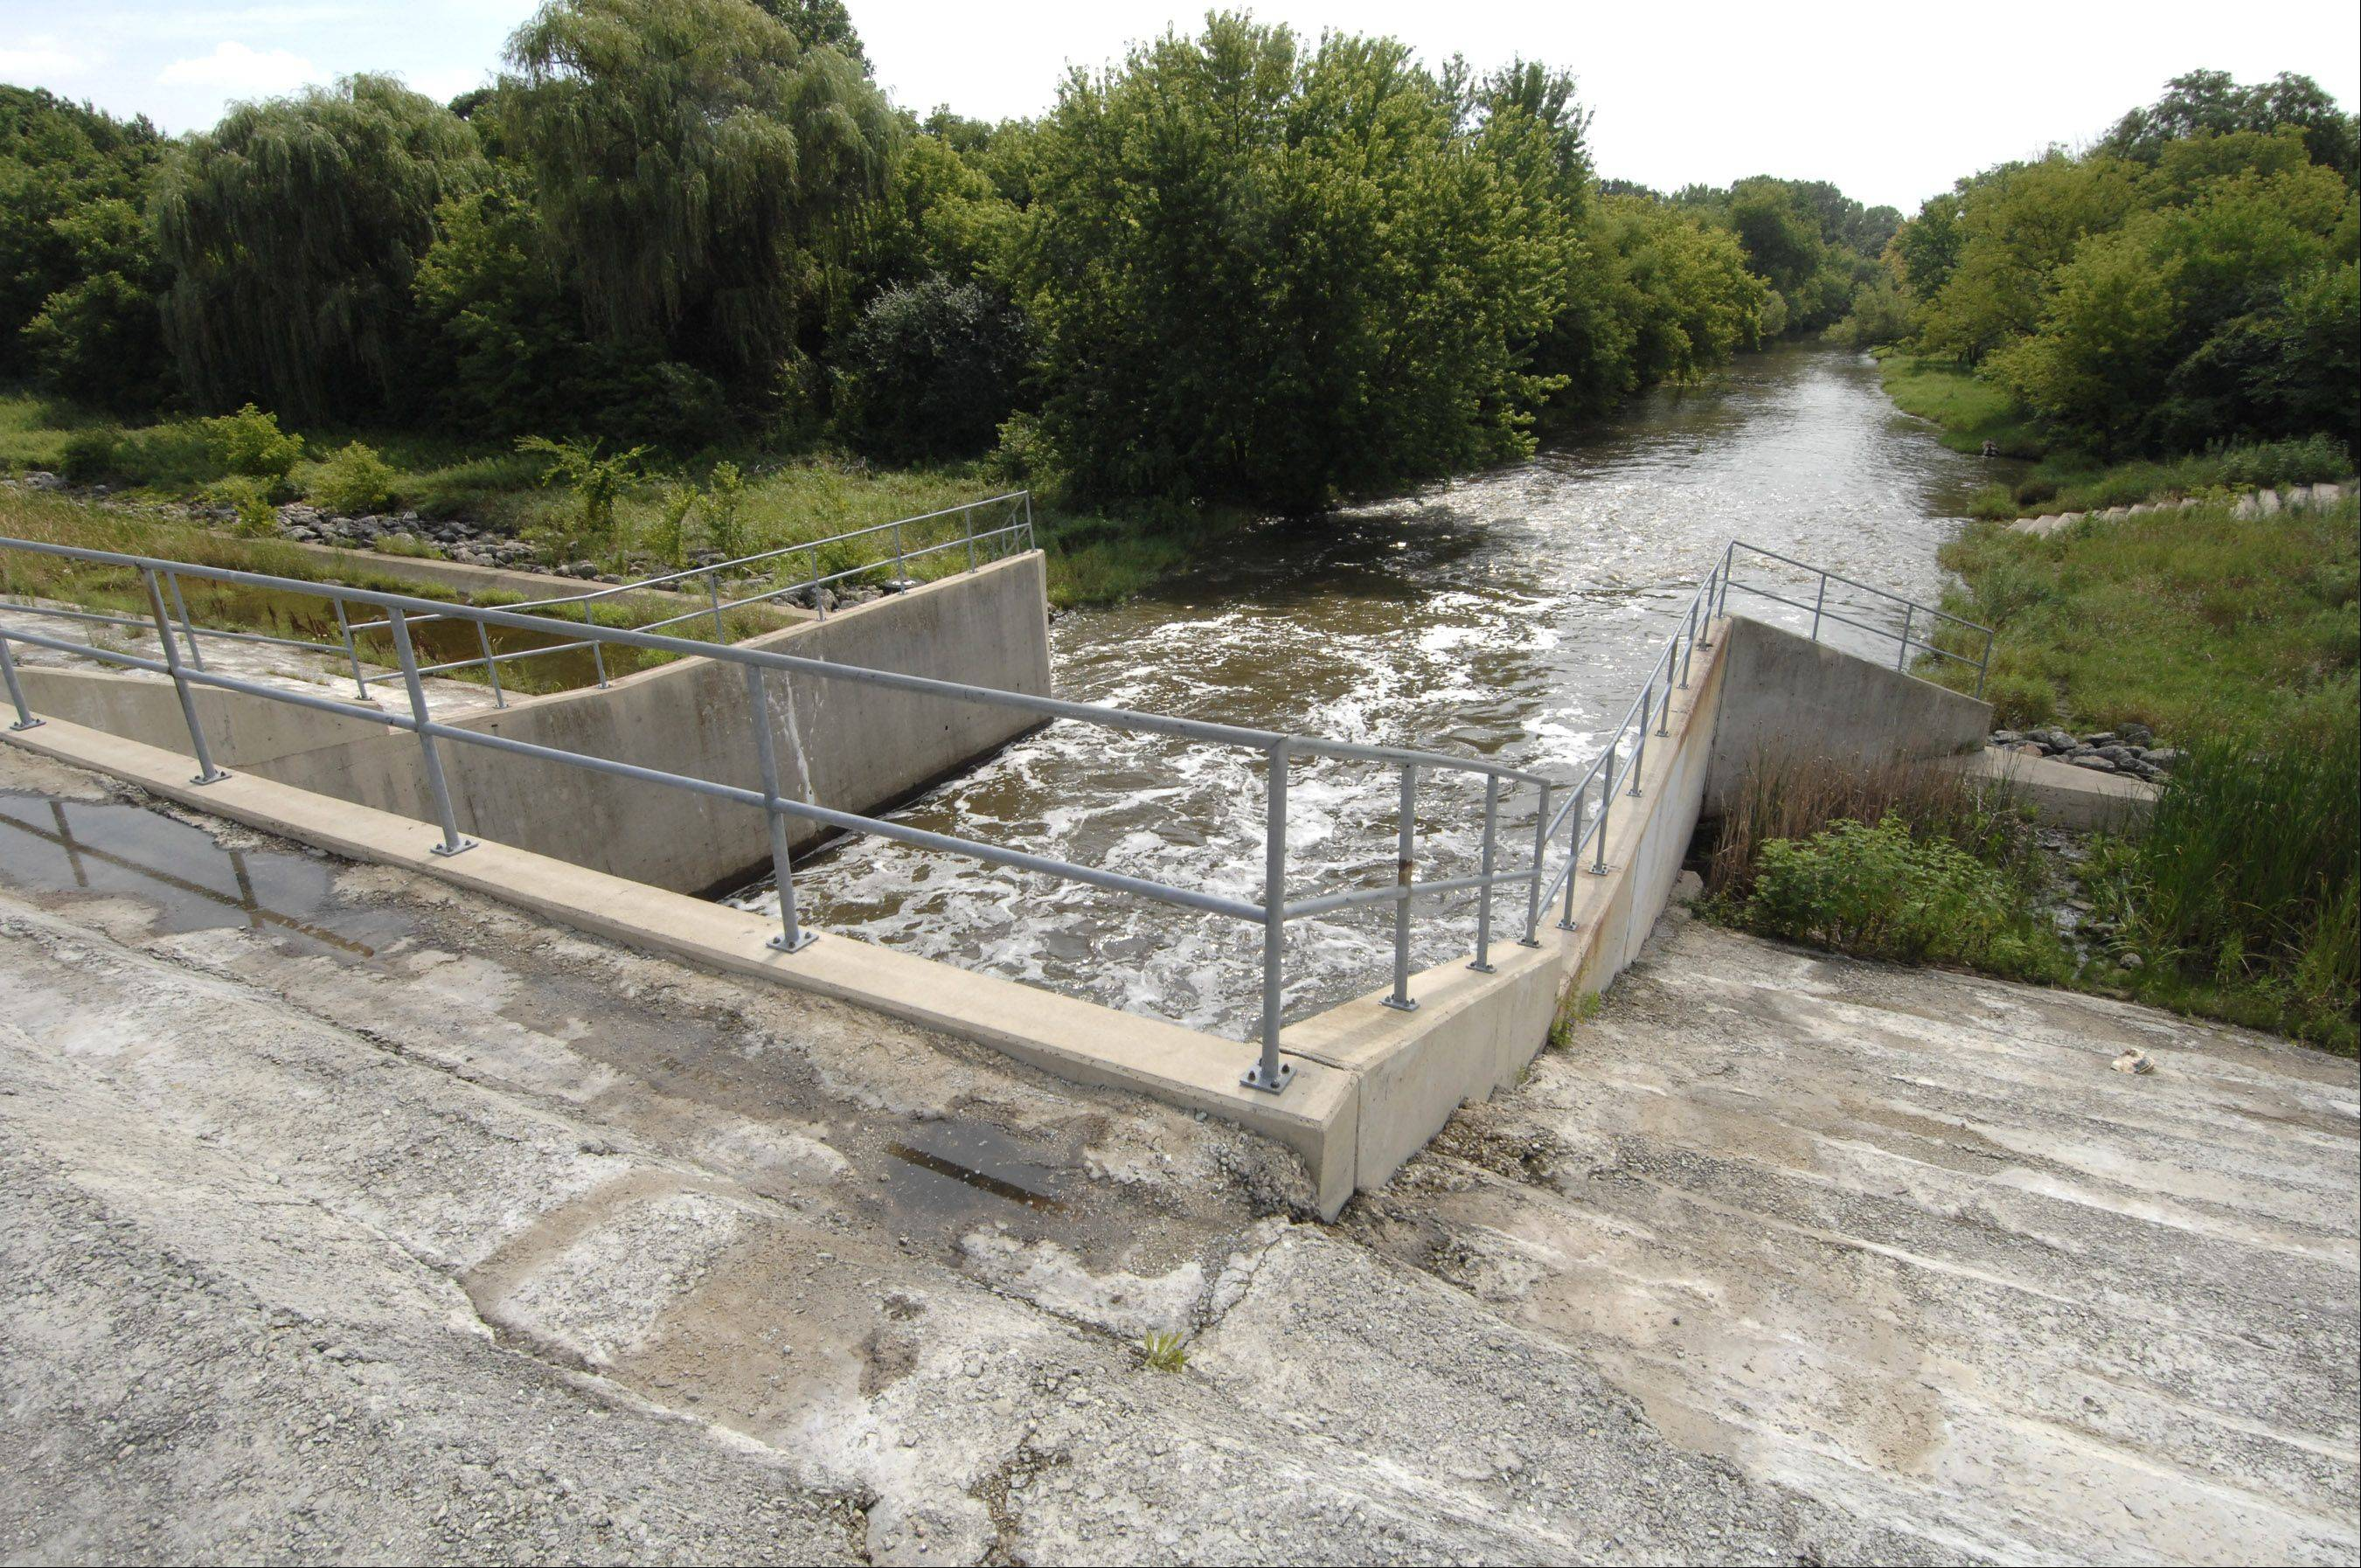 The candidates in Warrenville�s mayoral race have differing views on whether Fawell Dam near Naperville should be removed to address flooding problems upstream in Warrenville.